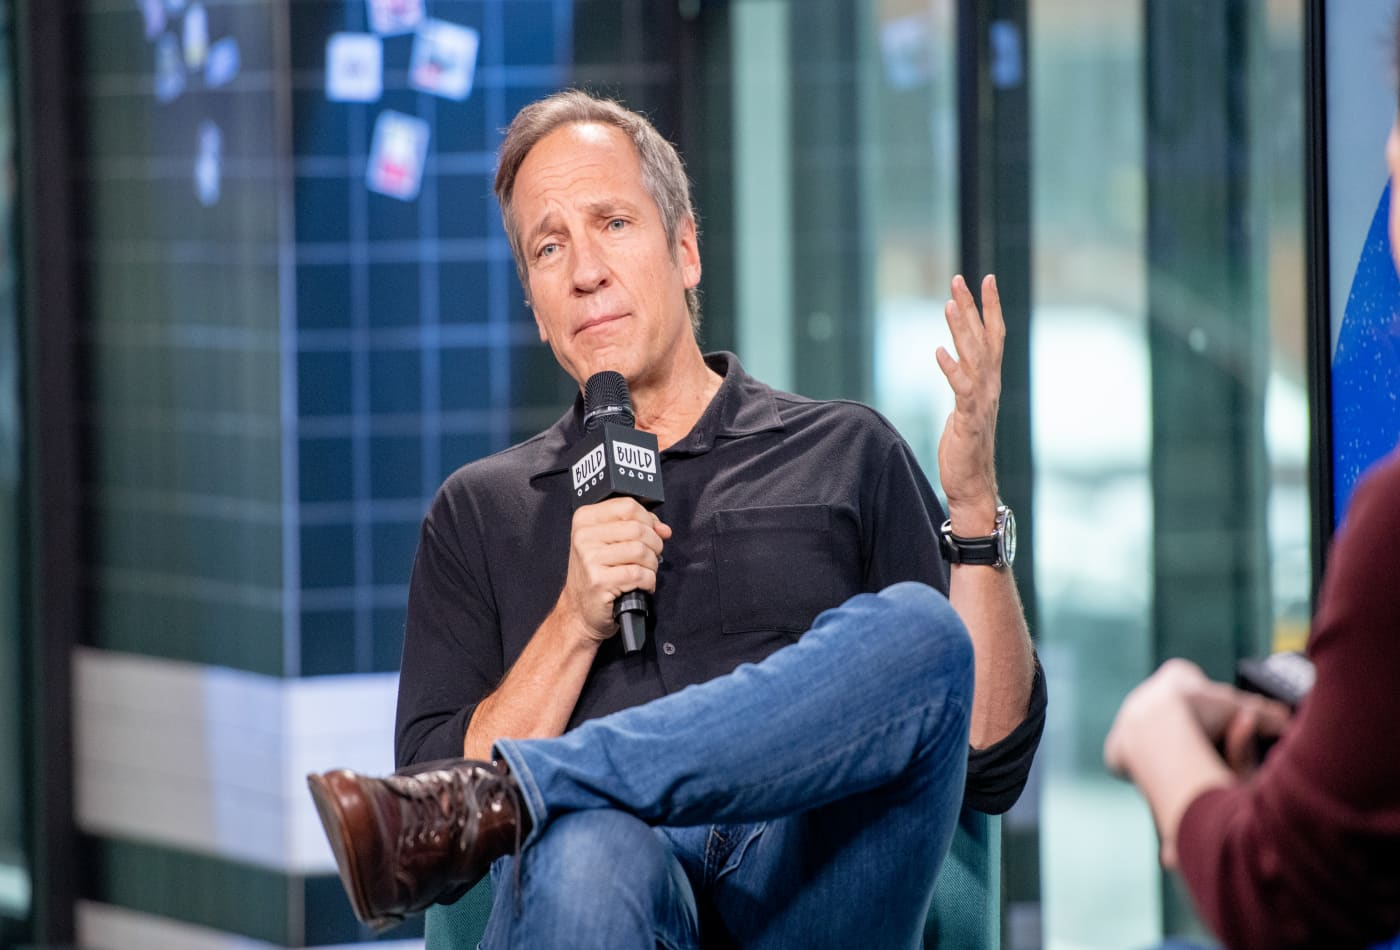 Here's why Mike Rowe thinks pursuing your passion may not lead to happiness